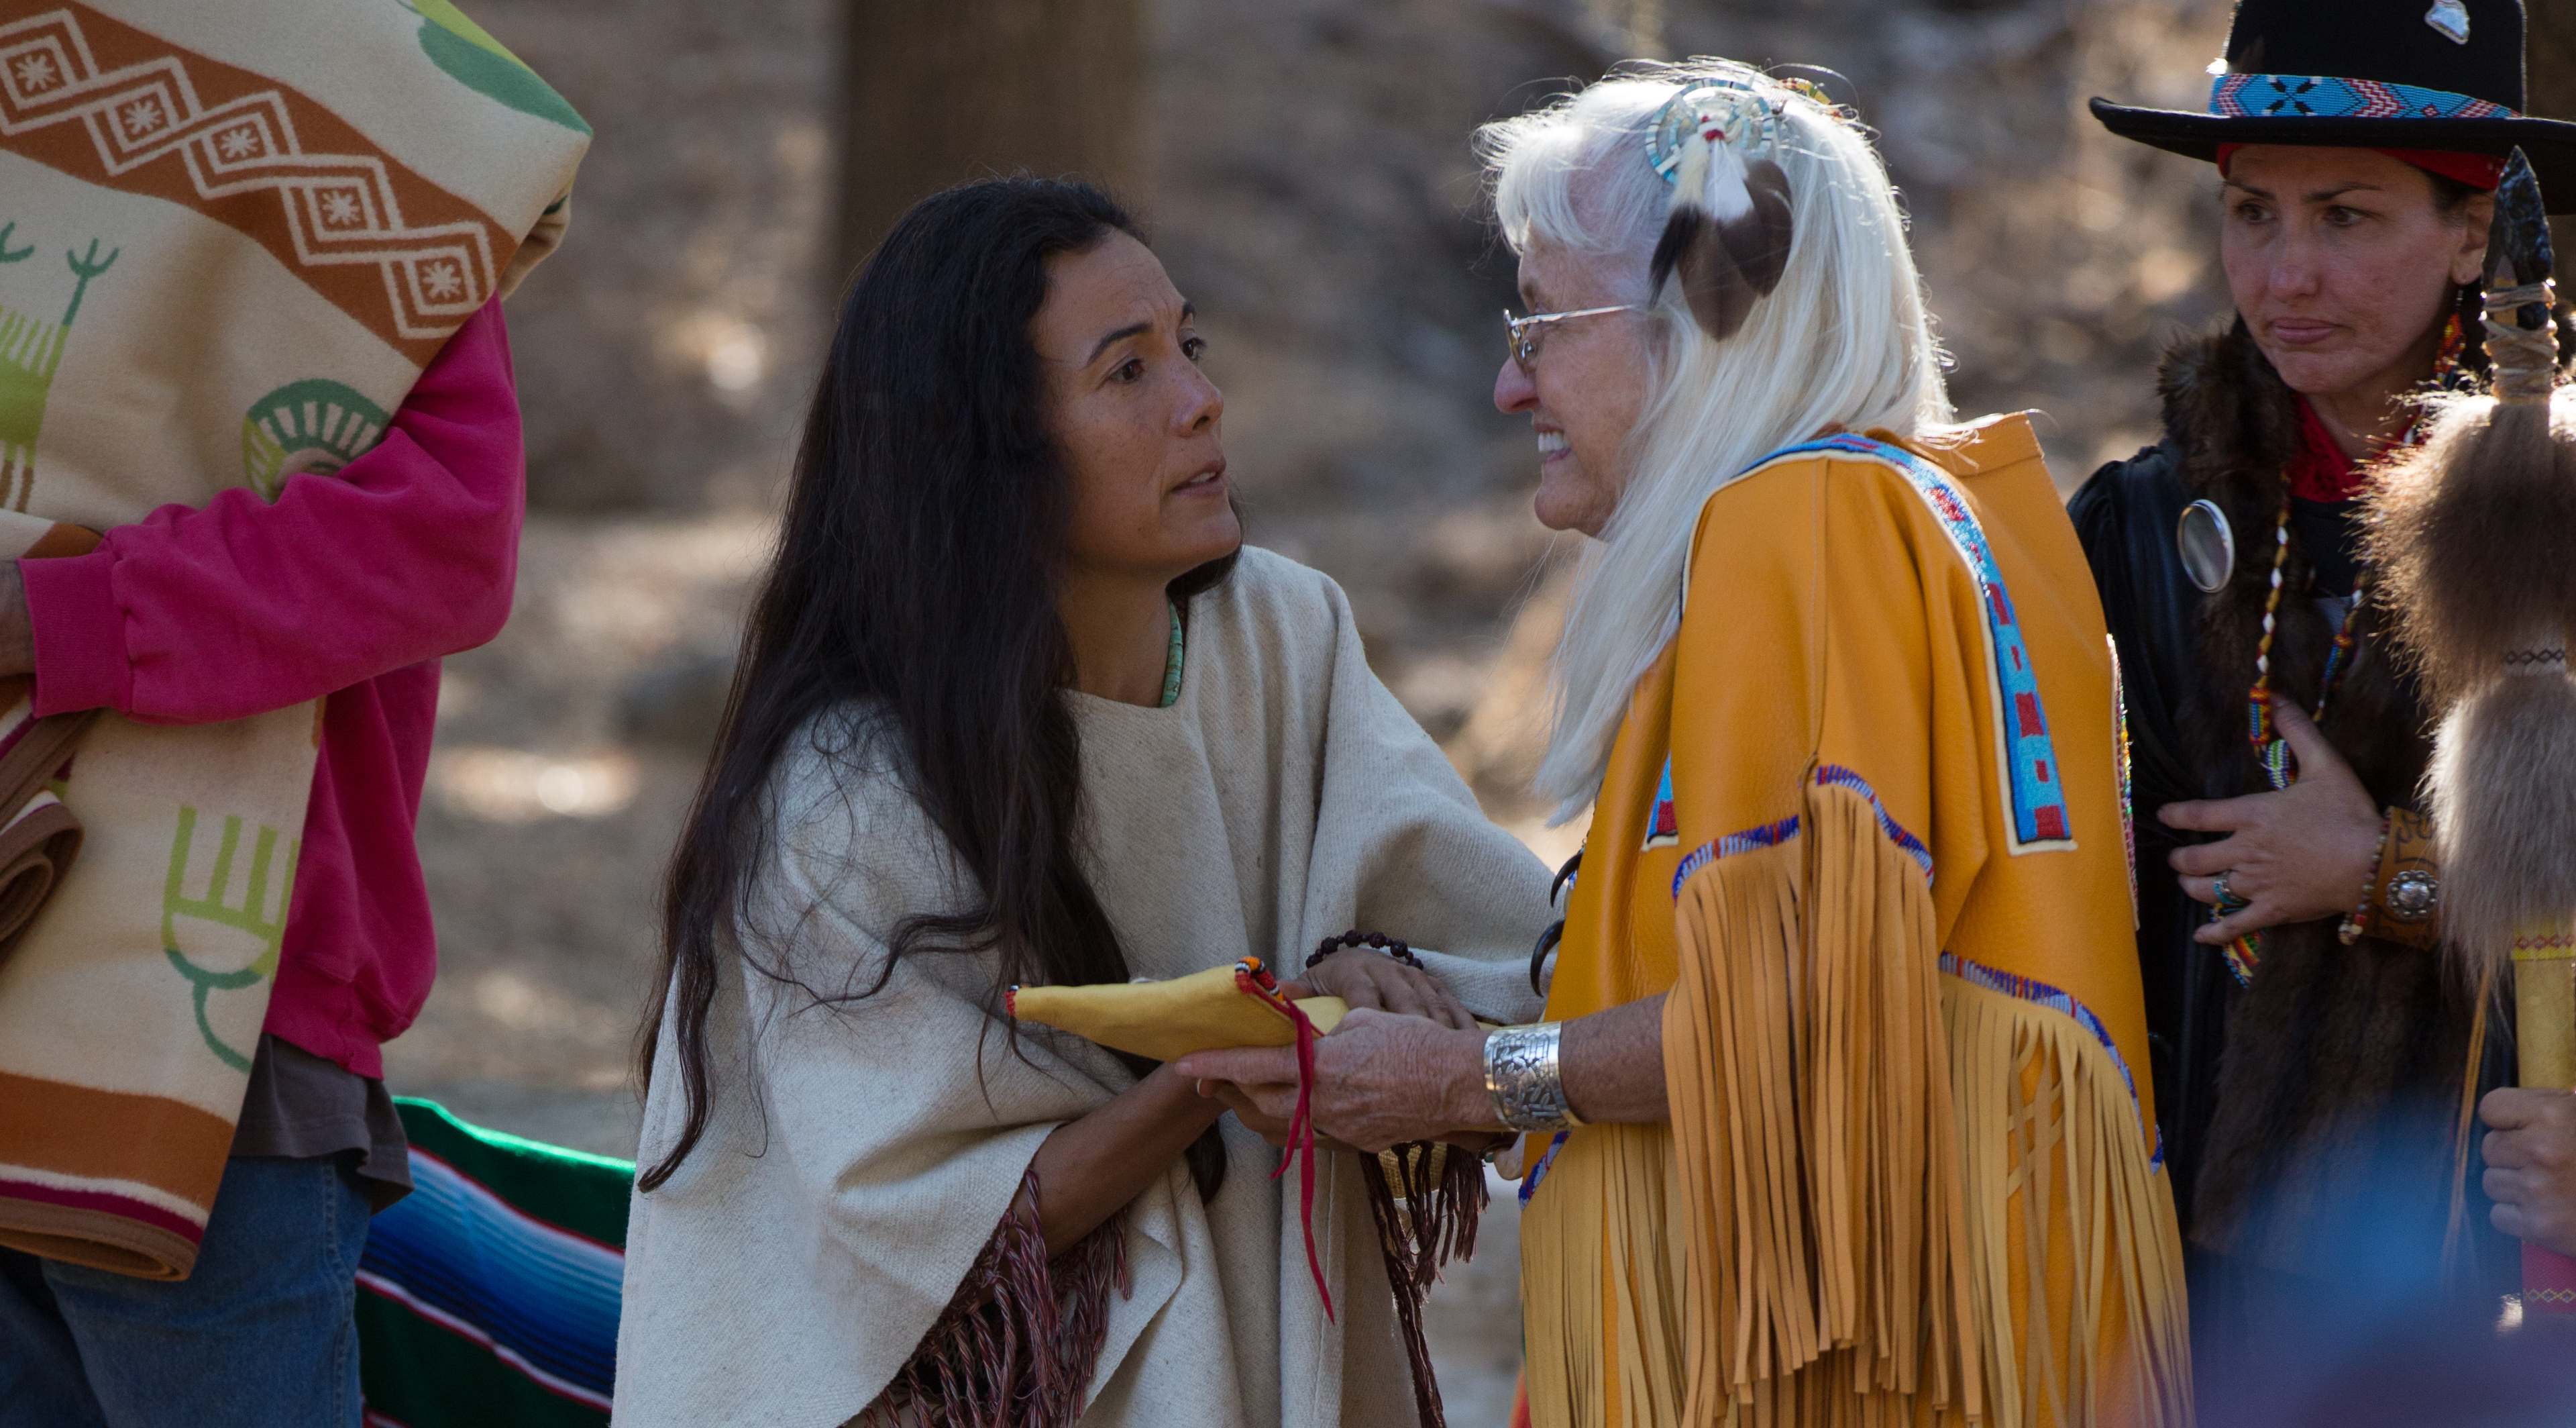 sister giving gift to elder at Long Dance Native American Ceremony